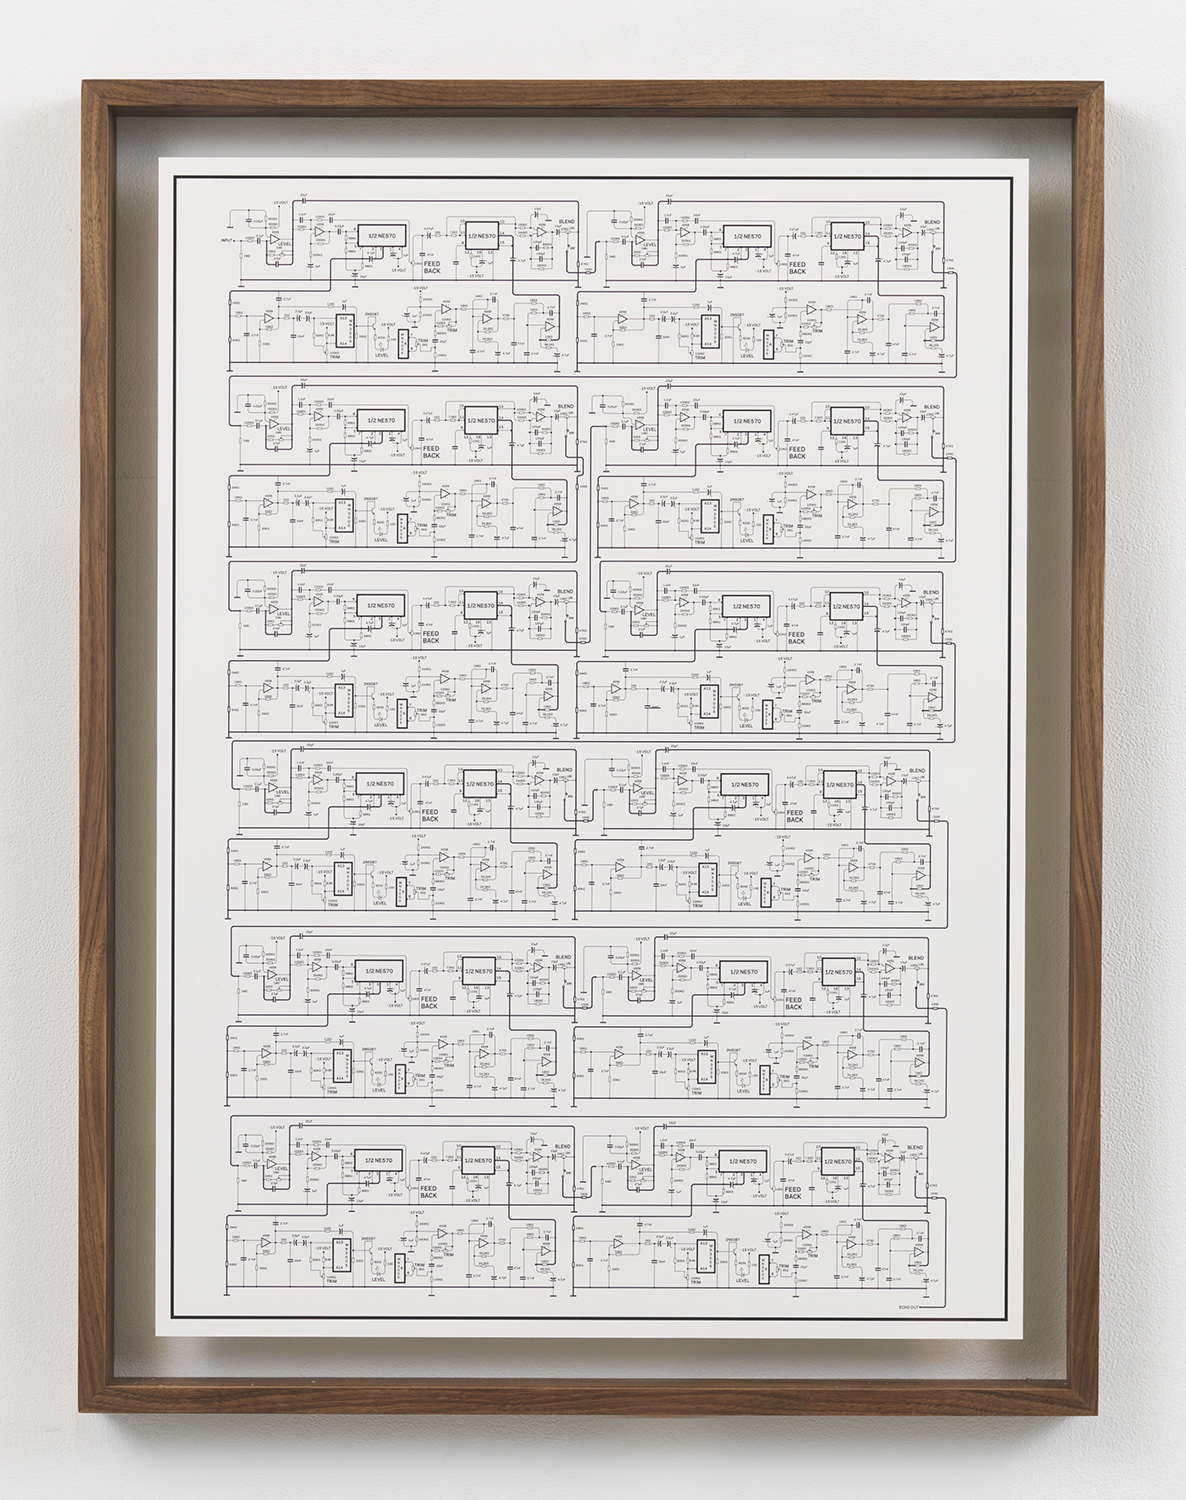 Deluxe Memory Man Cascade , 2015 Inkjet print in artist frame 33.75 x 25.75 inches